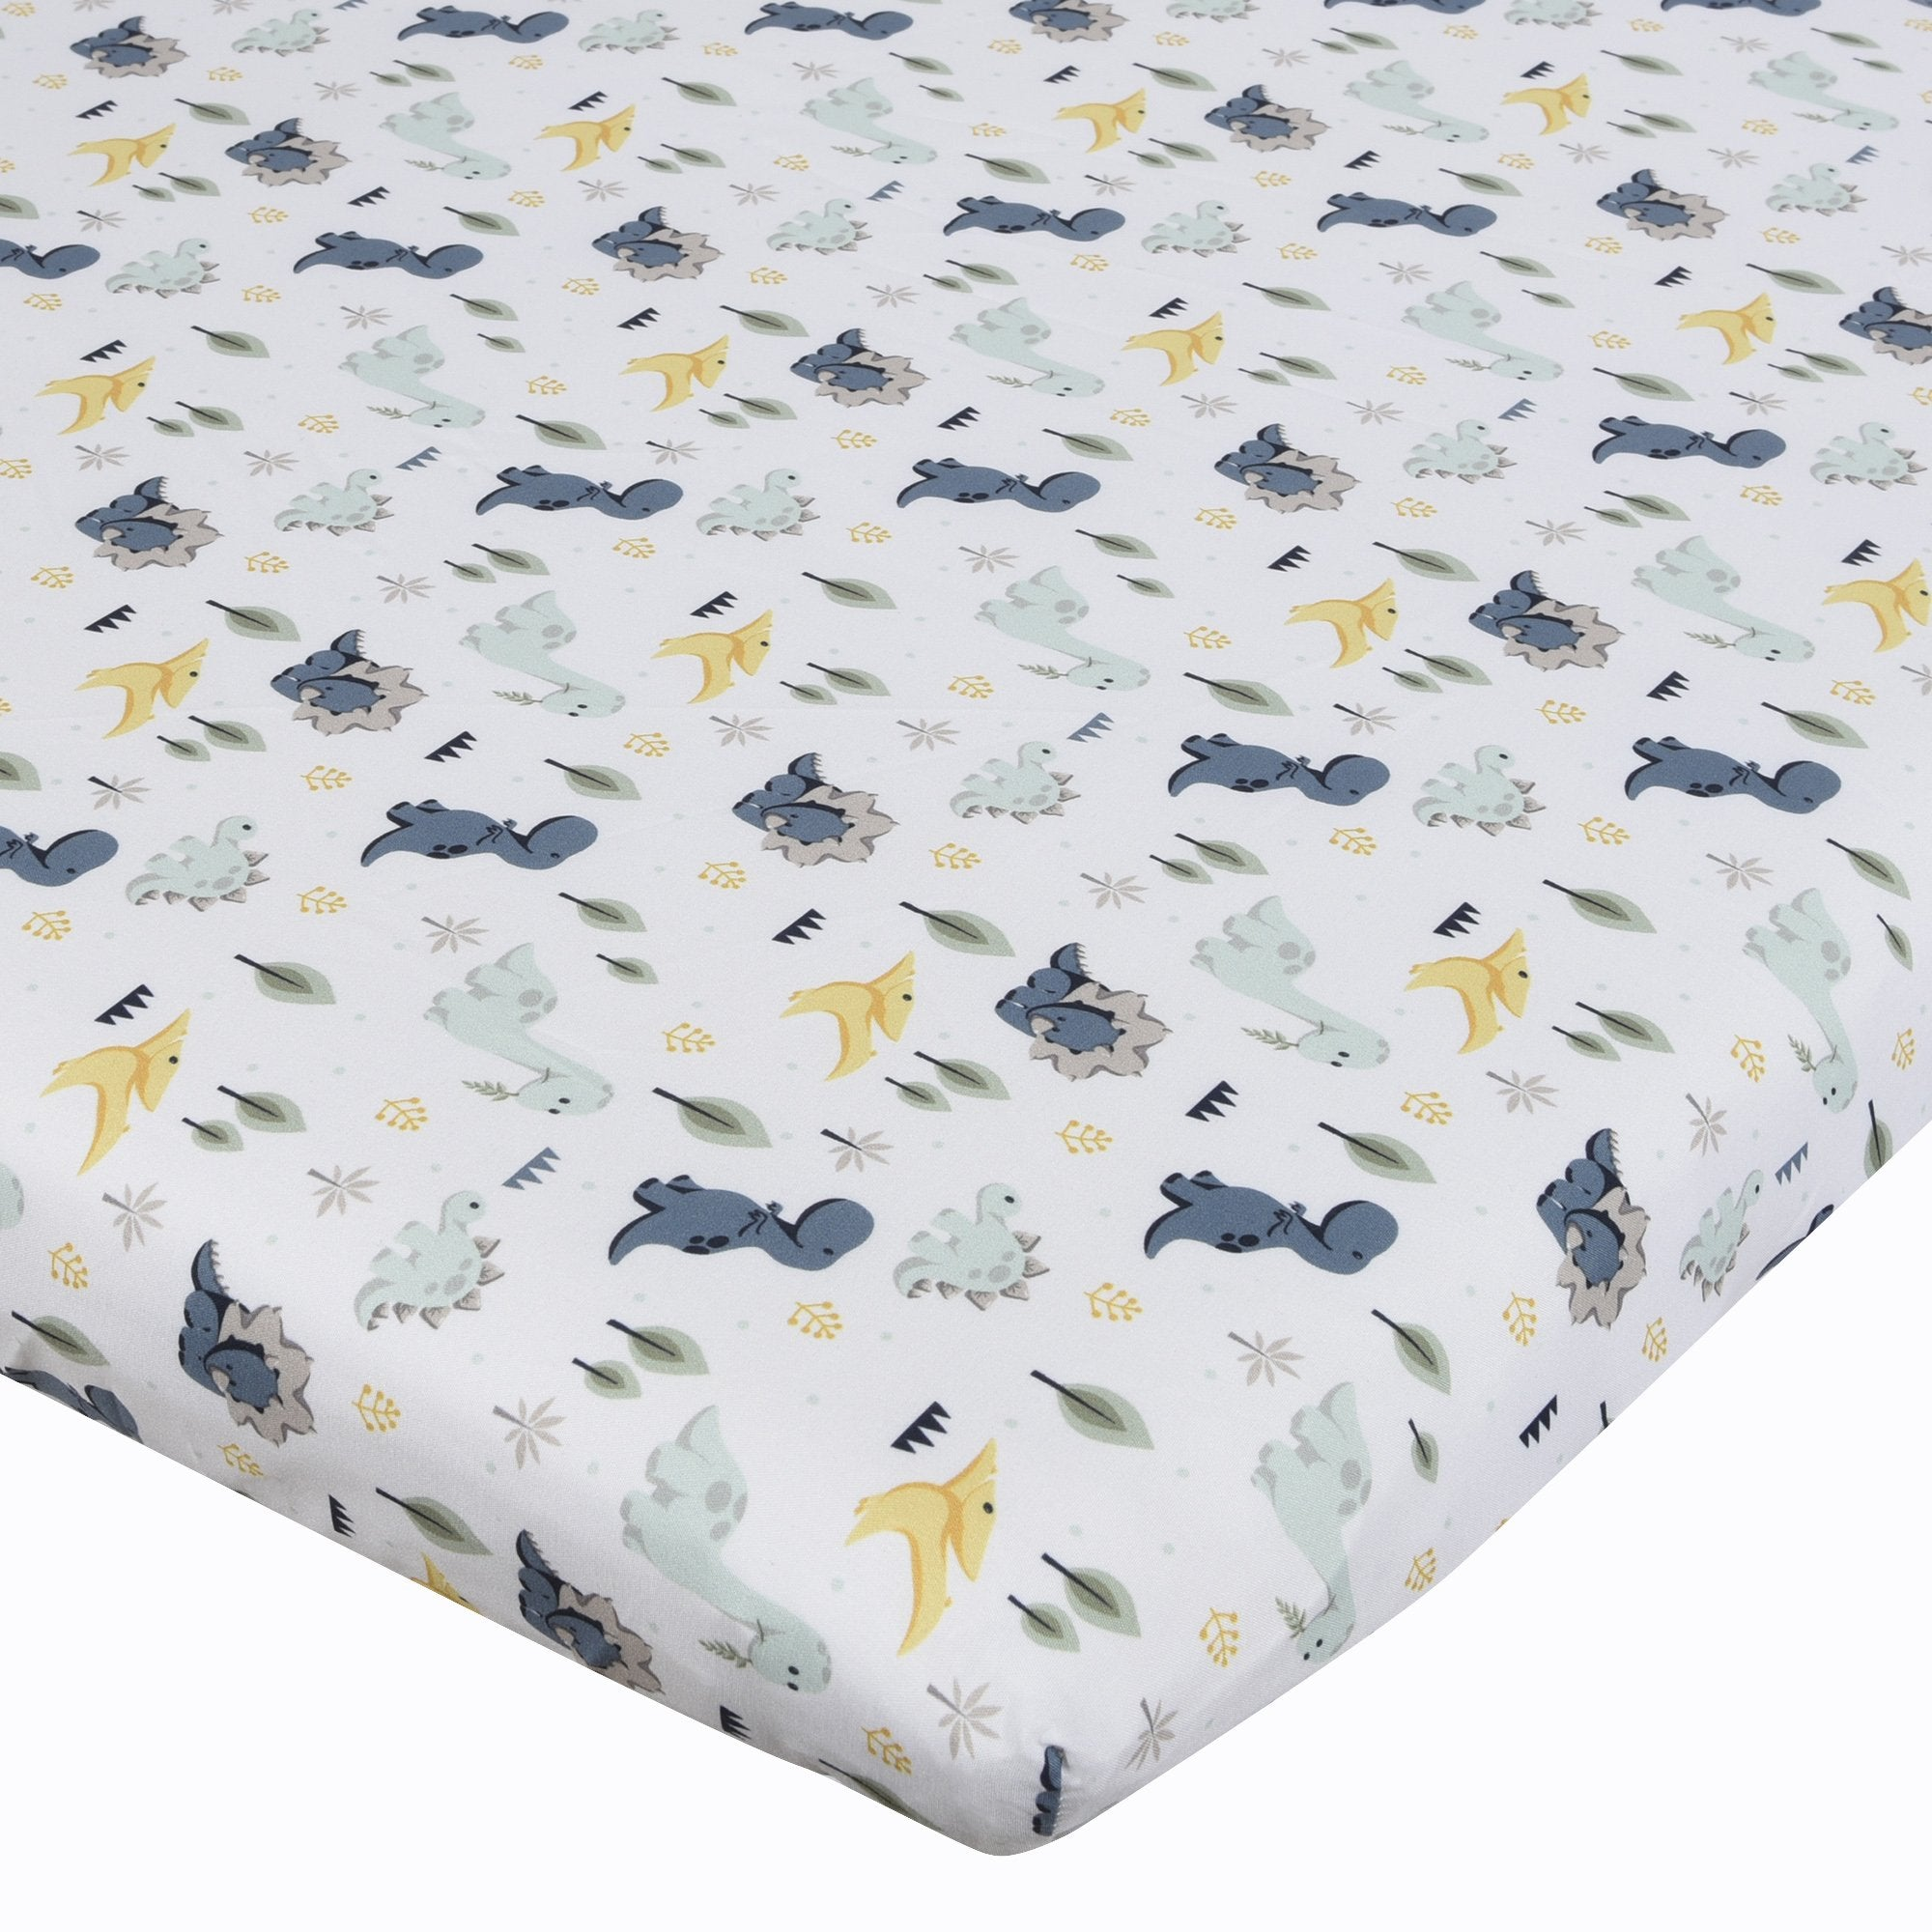 Baby's First by Nemcor 2-Pack Mini Crib Sheets, Dinosaurs